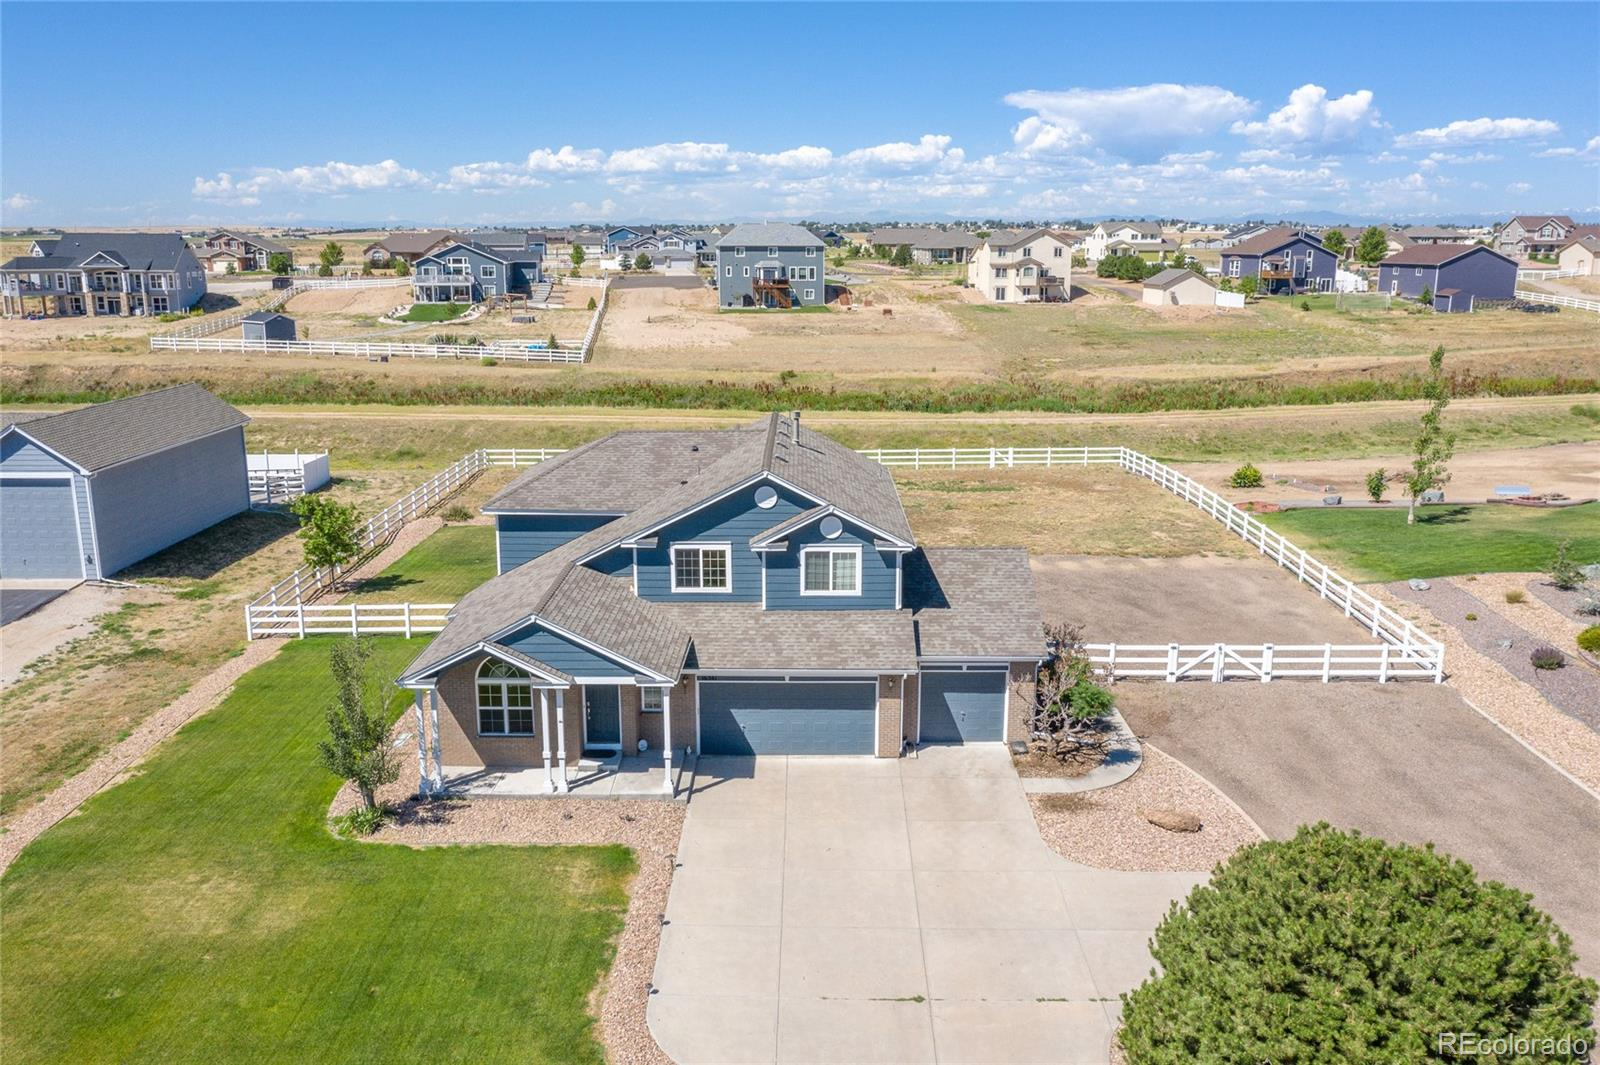 MLS# 4446332 - 1 - 16341 Timber Cove Street, Hudson, CO 80642